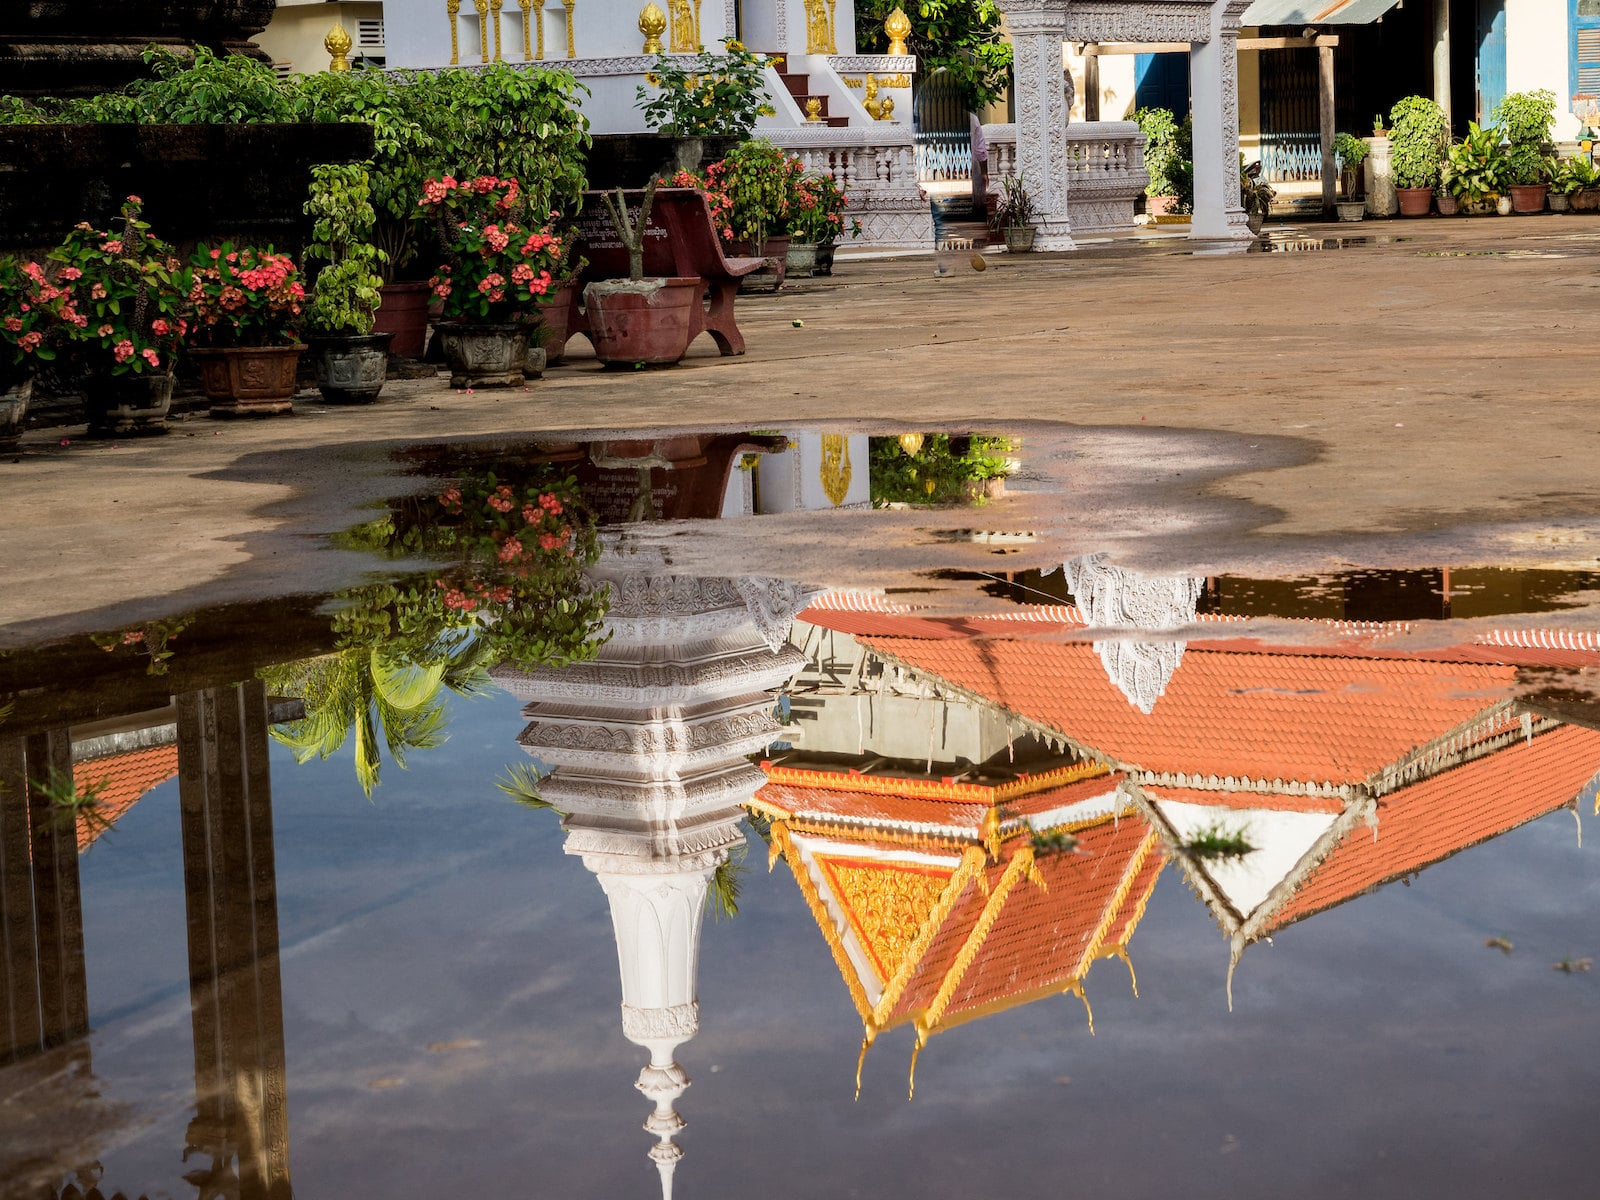 Image of a pagoda reflecting in a pool of water in Vietnam